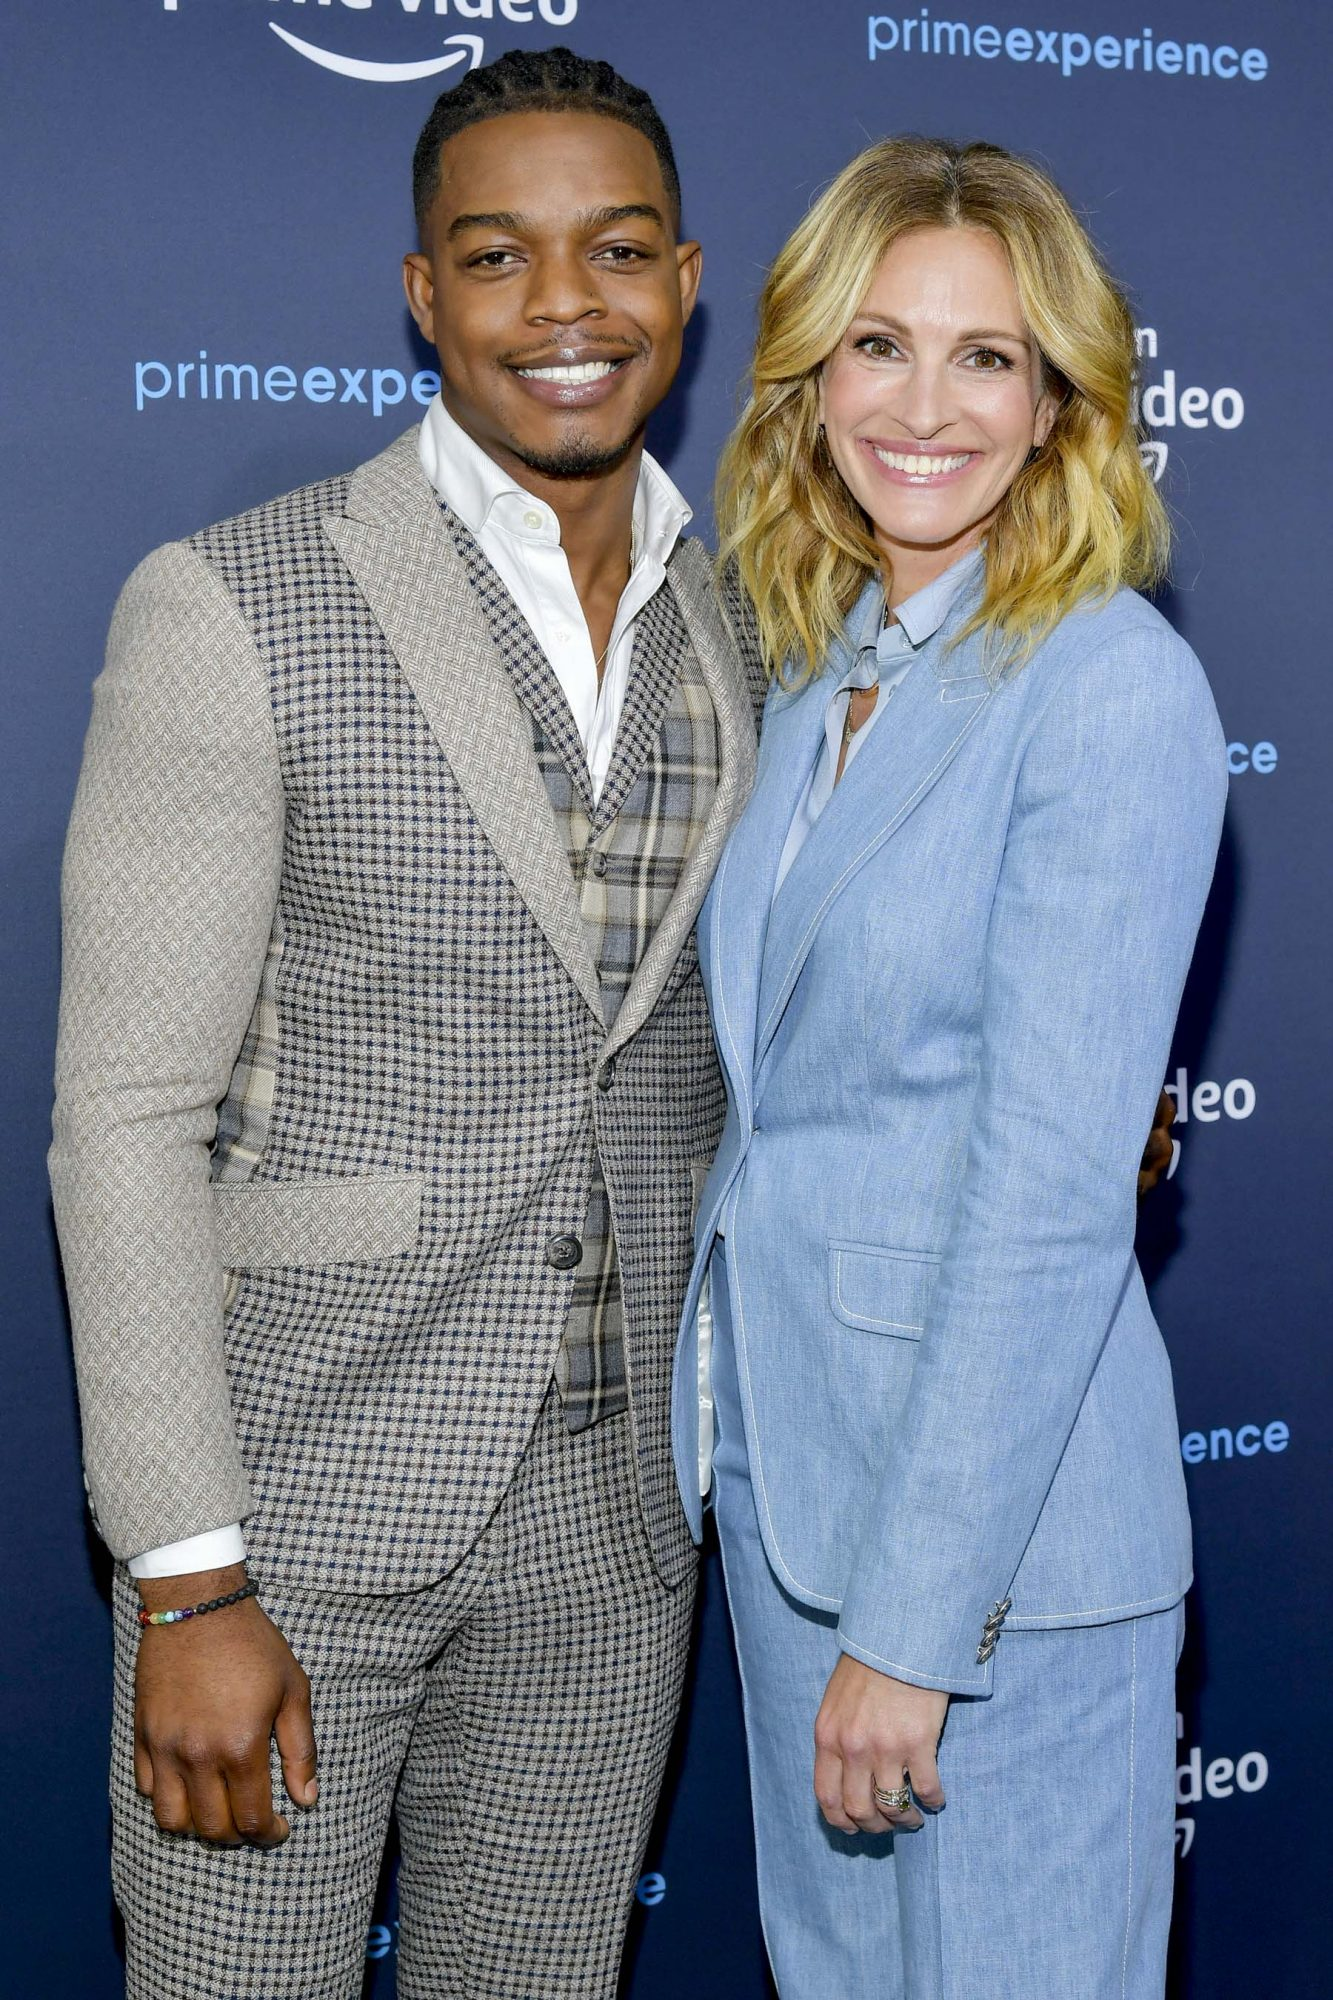 """HOLLYWOOD, CALIFORNIA - MAY 05: Stephan James and Julia Roberts attend the Amazon Prime Experience FYC Screening of """"Homecoming"""" at Hollywood Athletic Club on May 05, 2019 in Hollywood, California. (Photo by Amy Sussman/Getty Images)"""